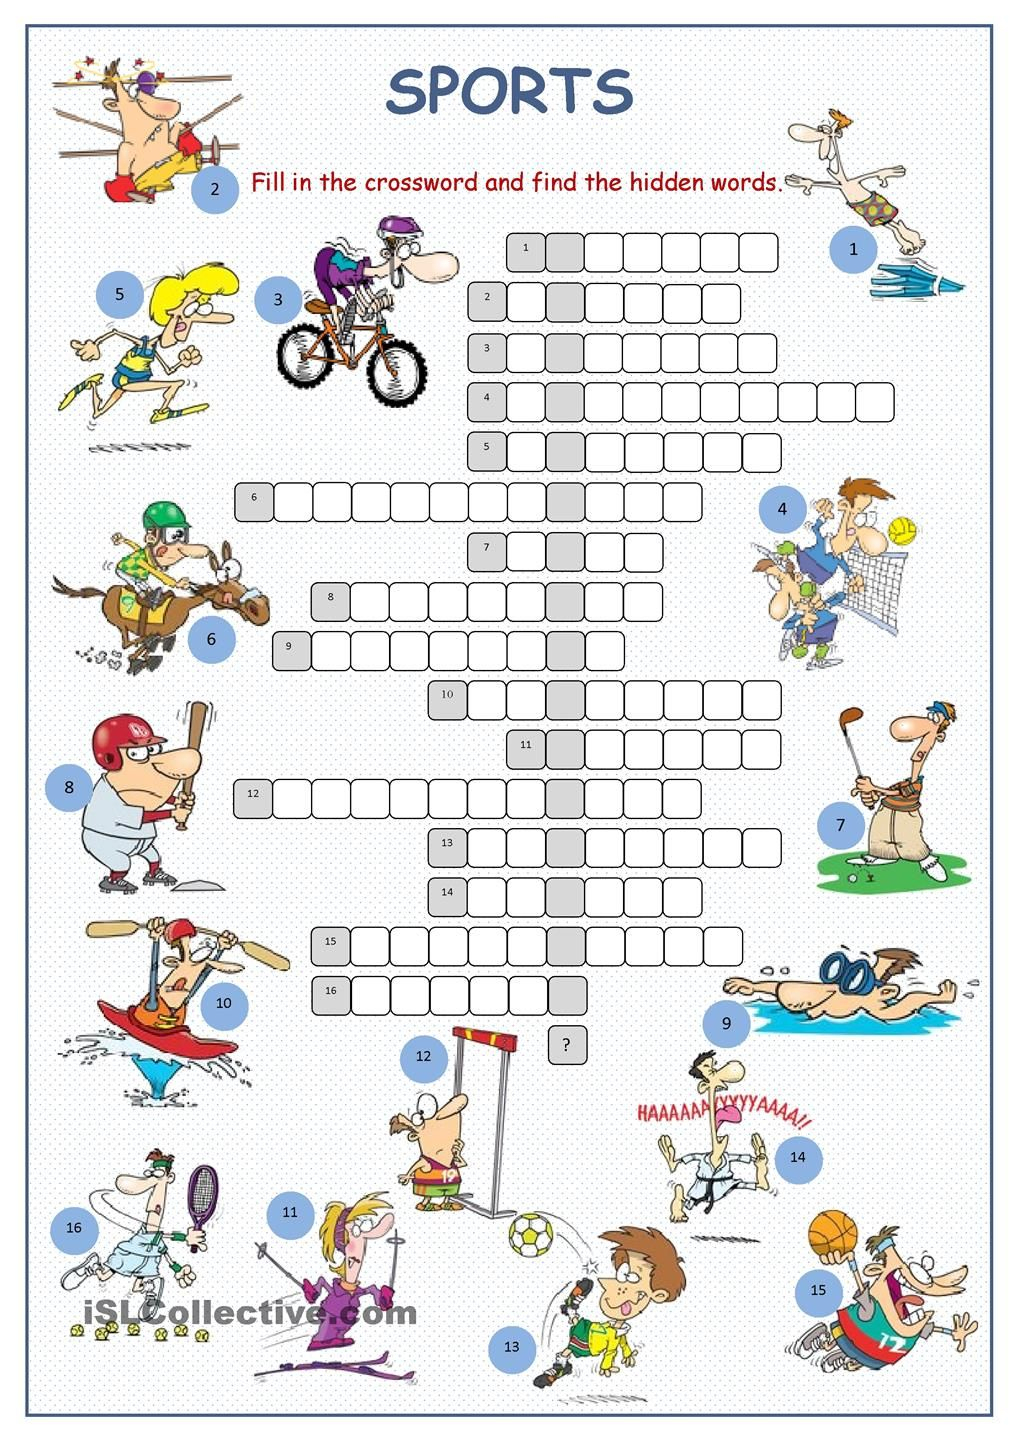 Sports Crossword Puzzle | English | Sports Crossword, Sport English - Printable Crossword Puzzles For Learning English